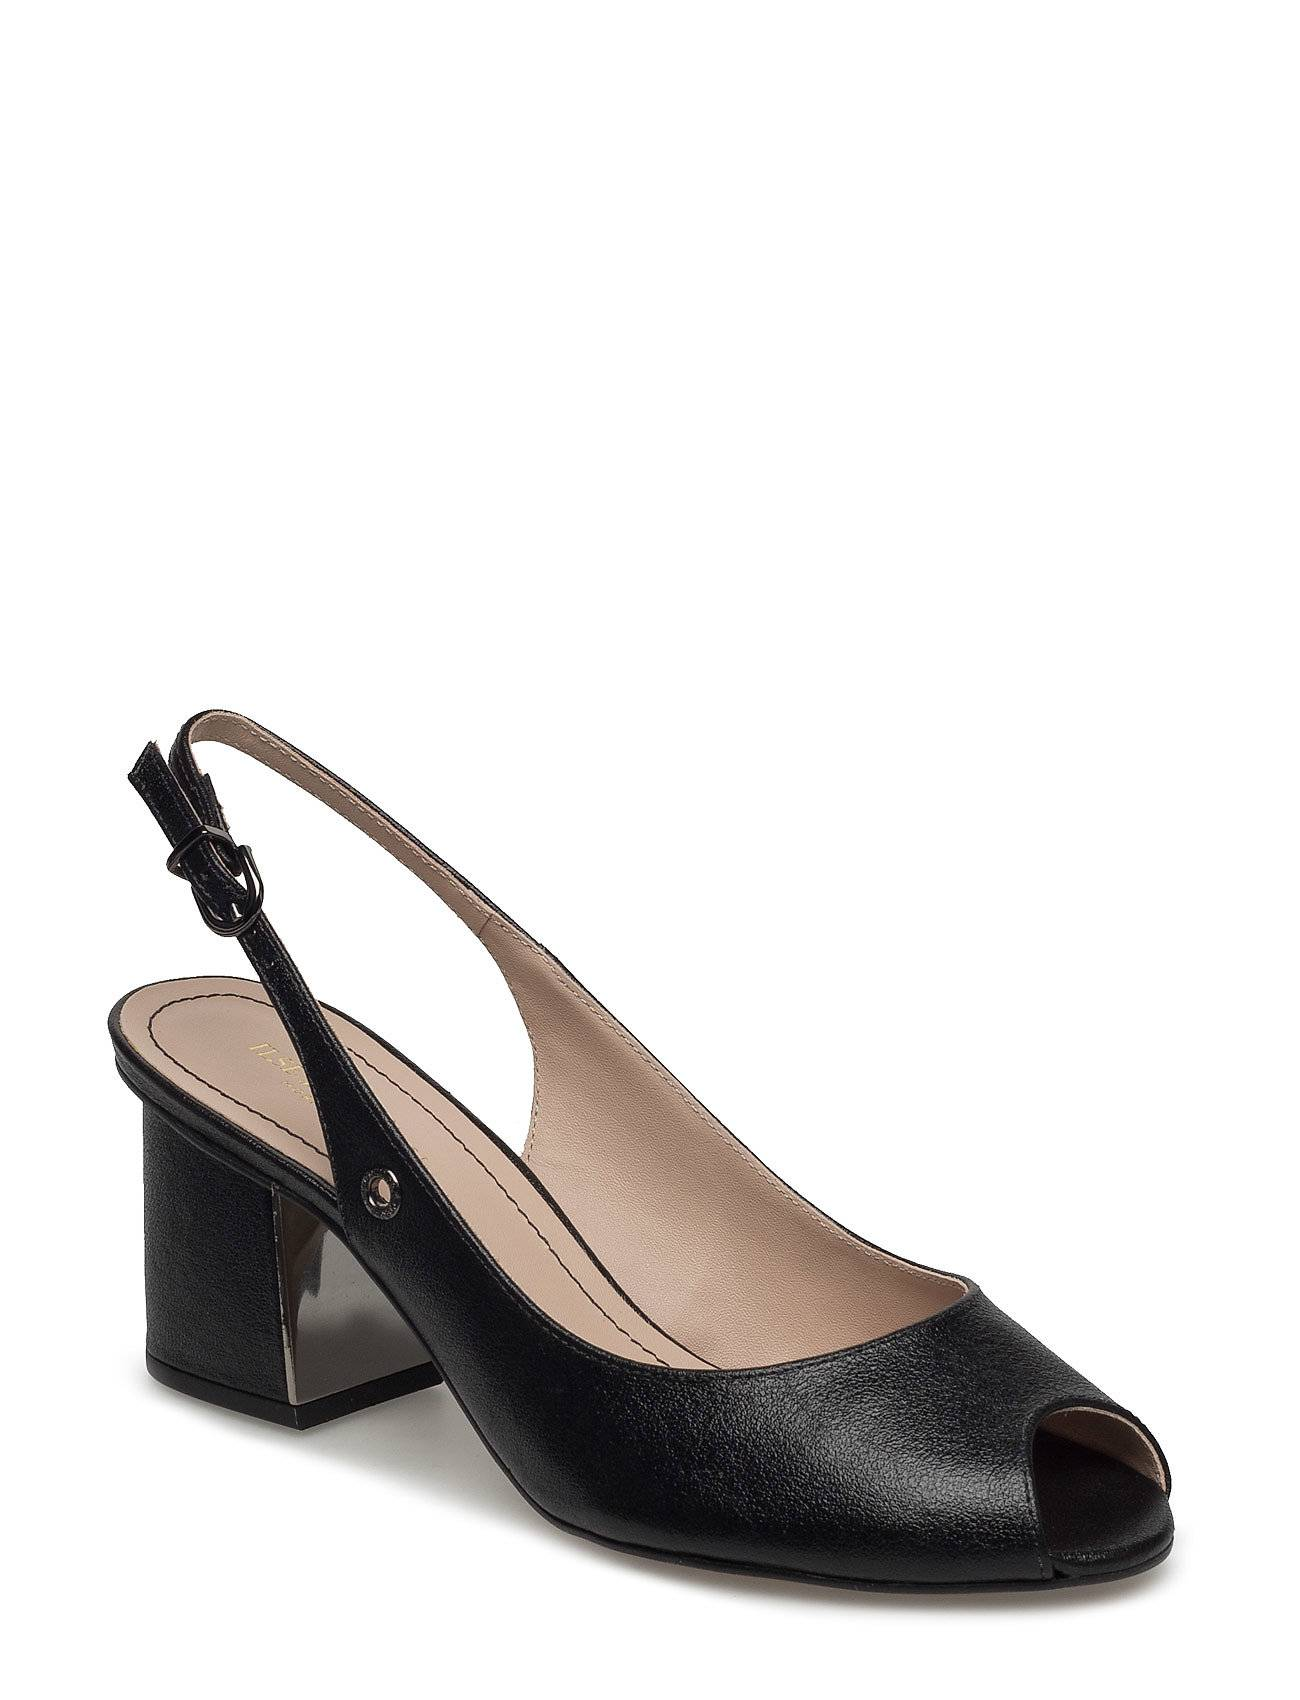 Ilse Jacobsen Sling-Back